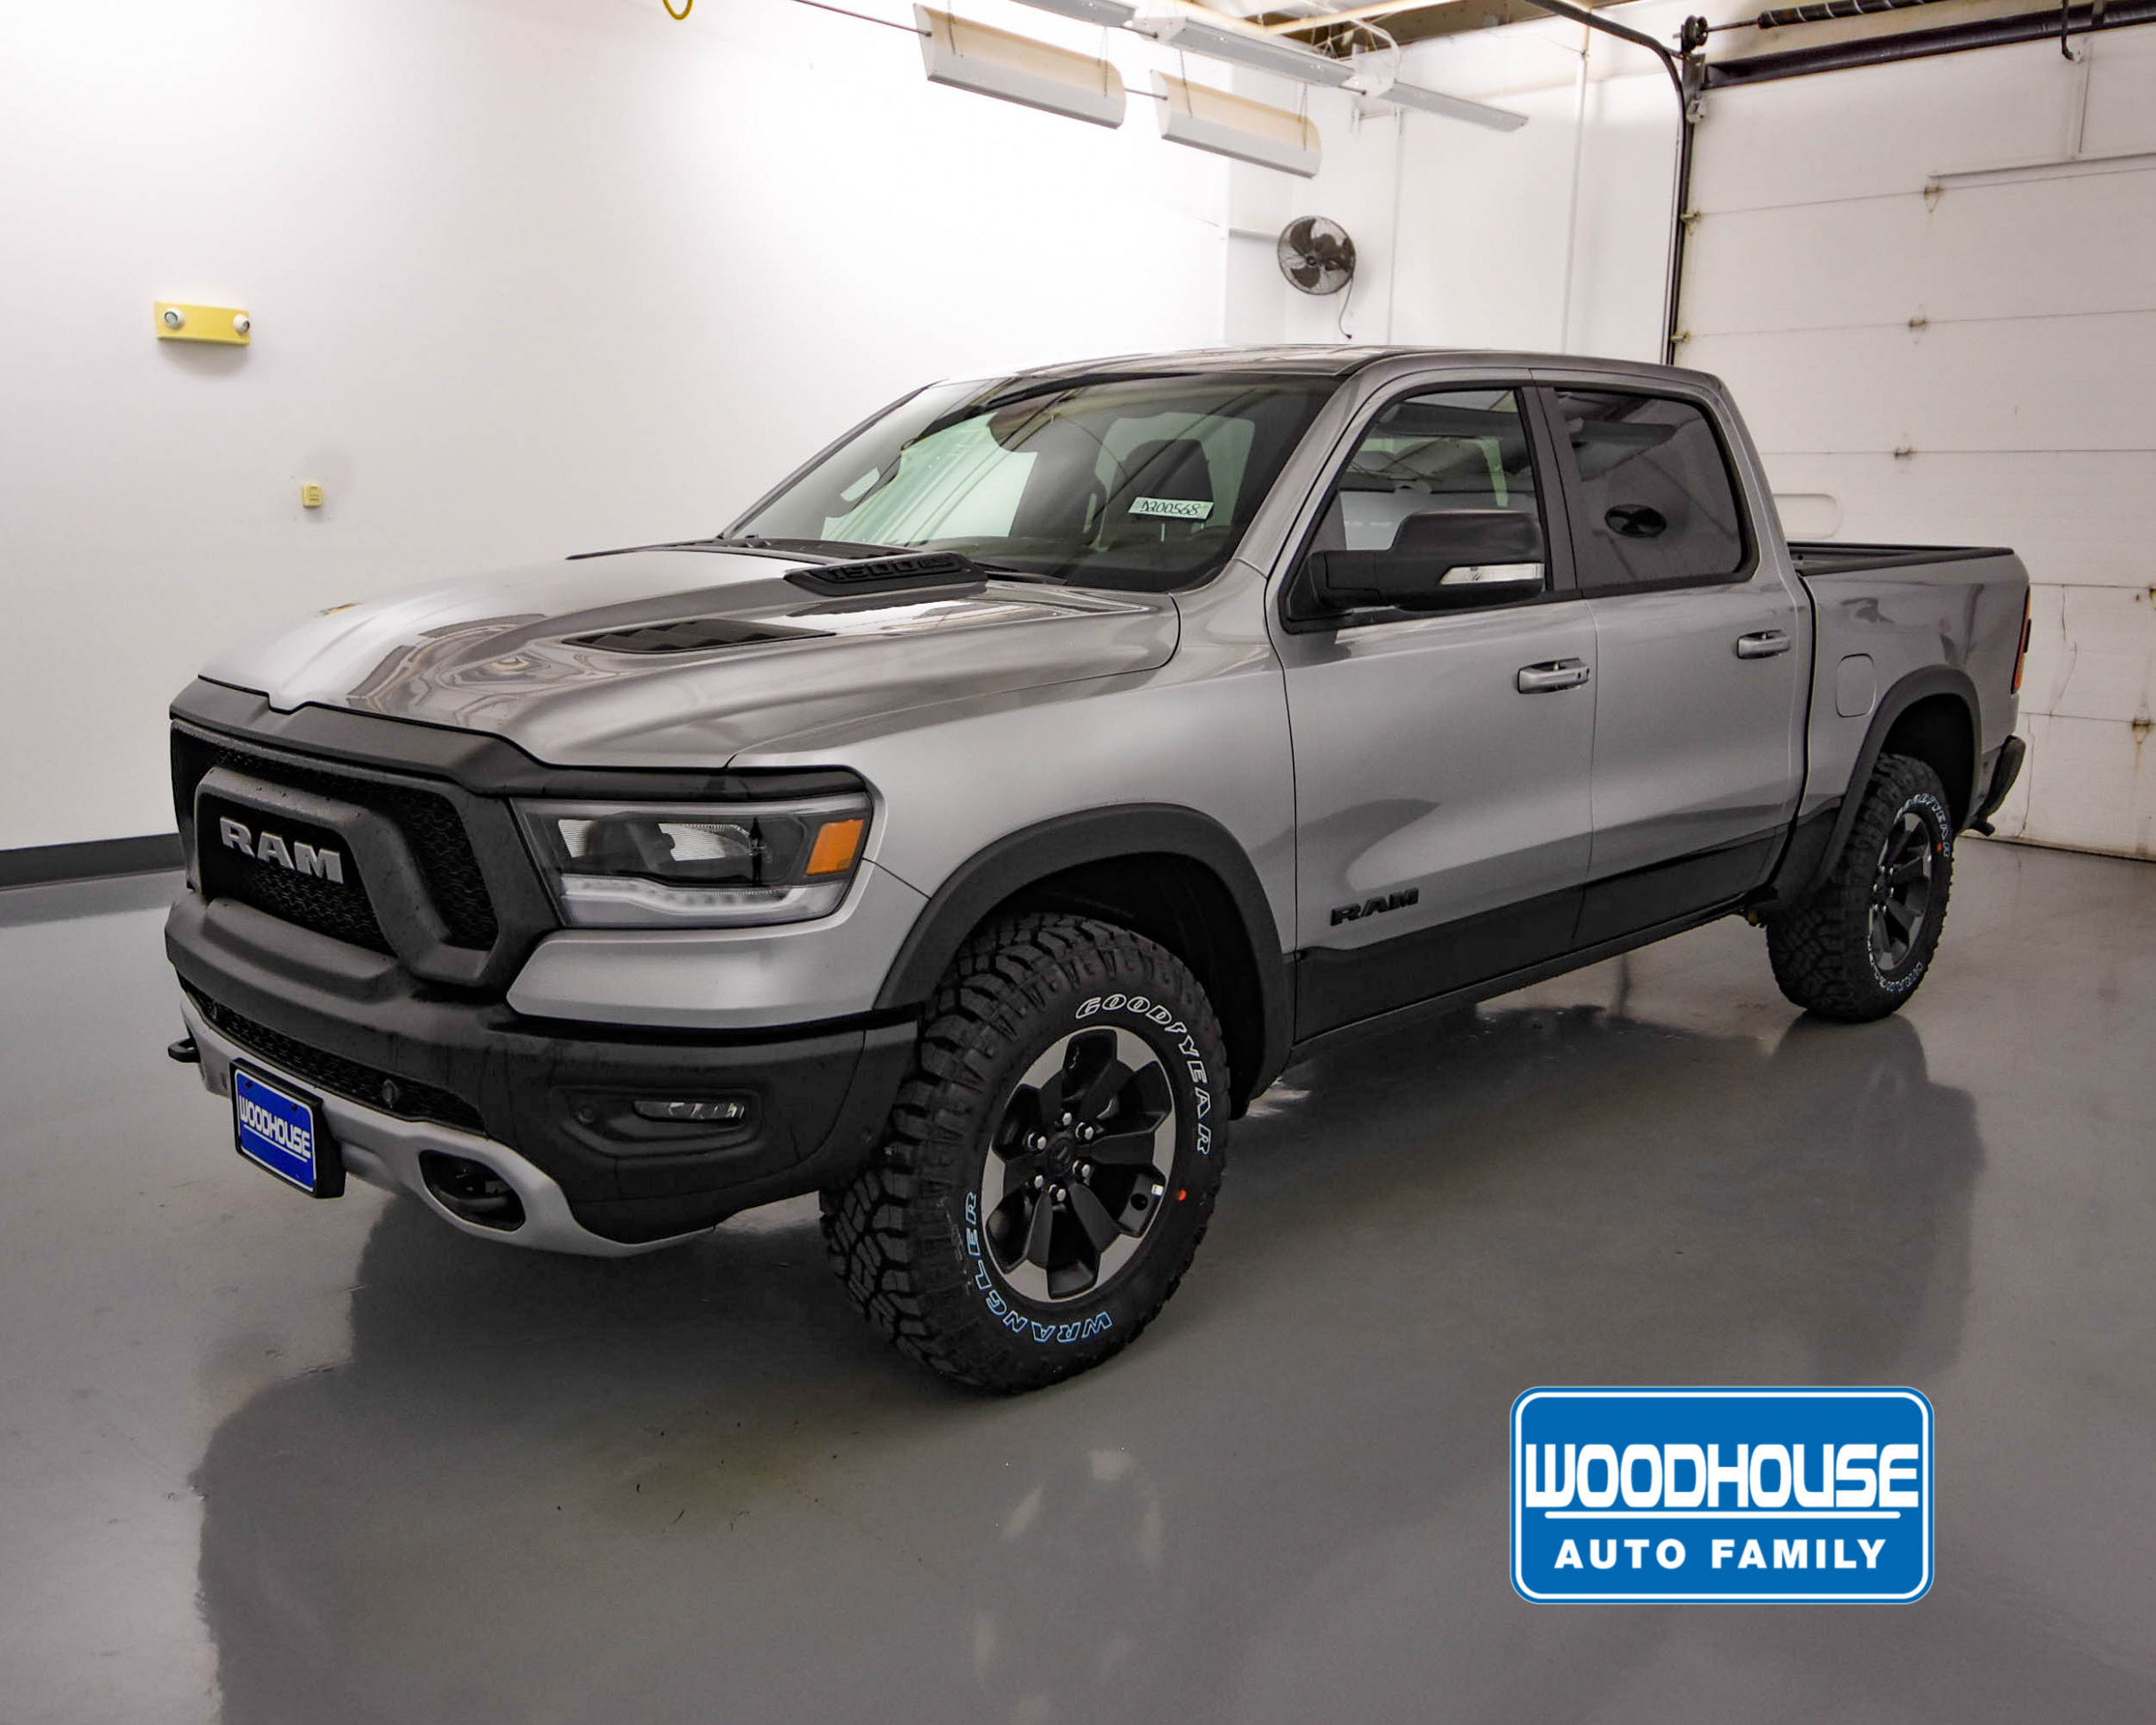 Woodhouse | New 8 Ram 8 For Sale | Chrysler Dodge Jeep Ram - 2020 dodge trucks for sale